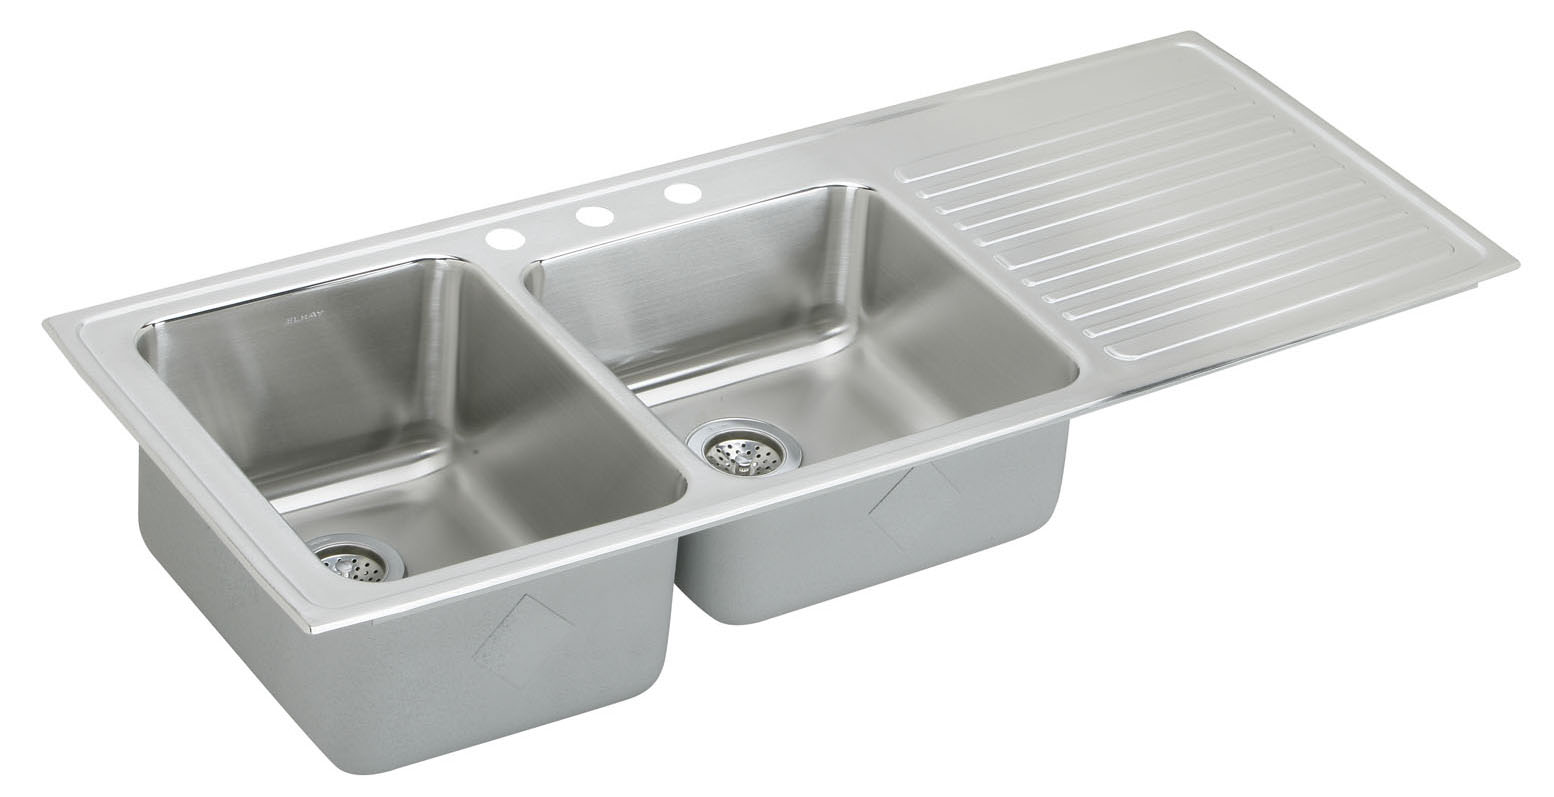 Elkay Stainless Steel Kitchen Sinks : ... Stainless Steel Sink Stainless Sinks Stainless Steel Sinks